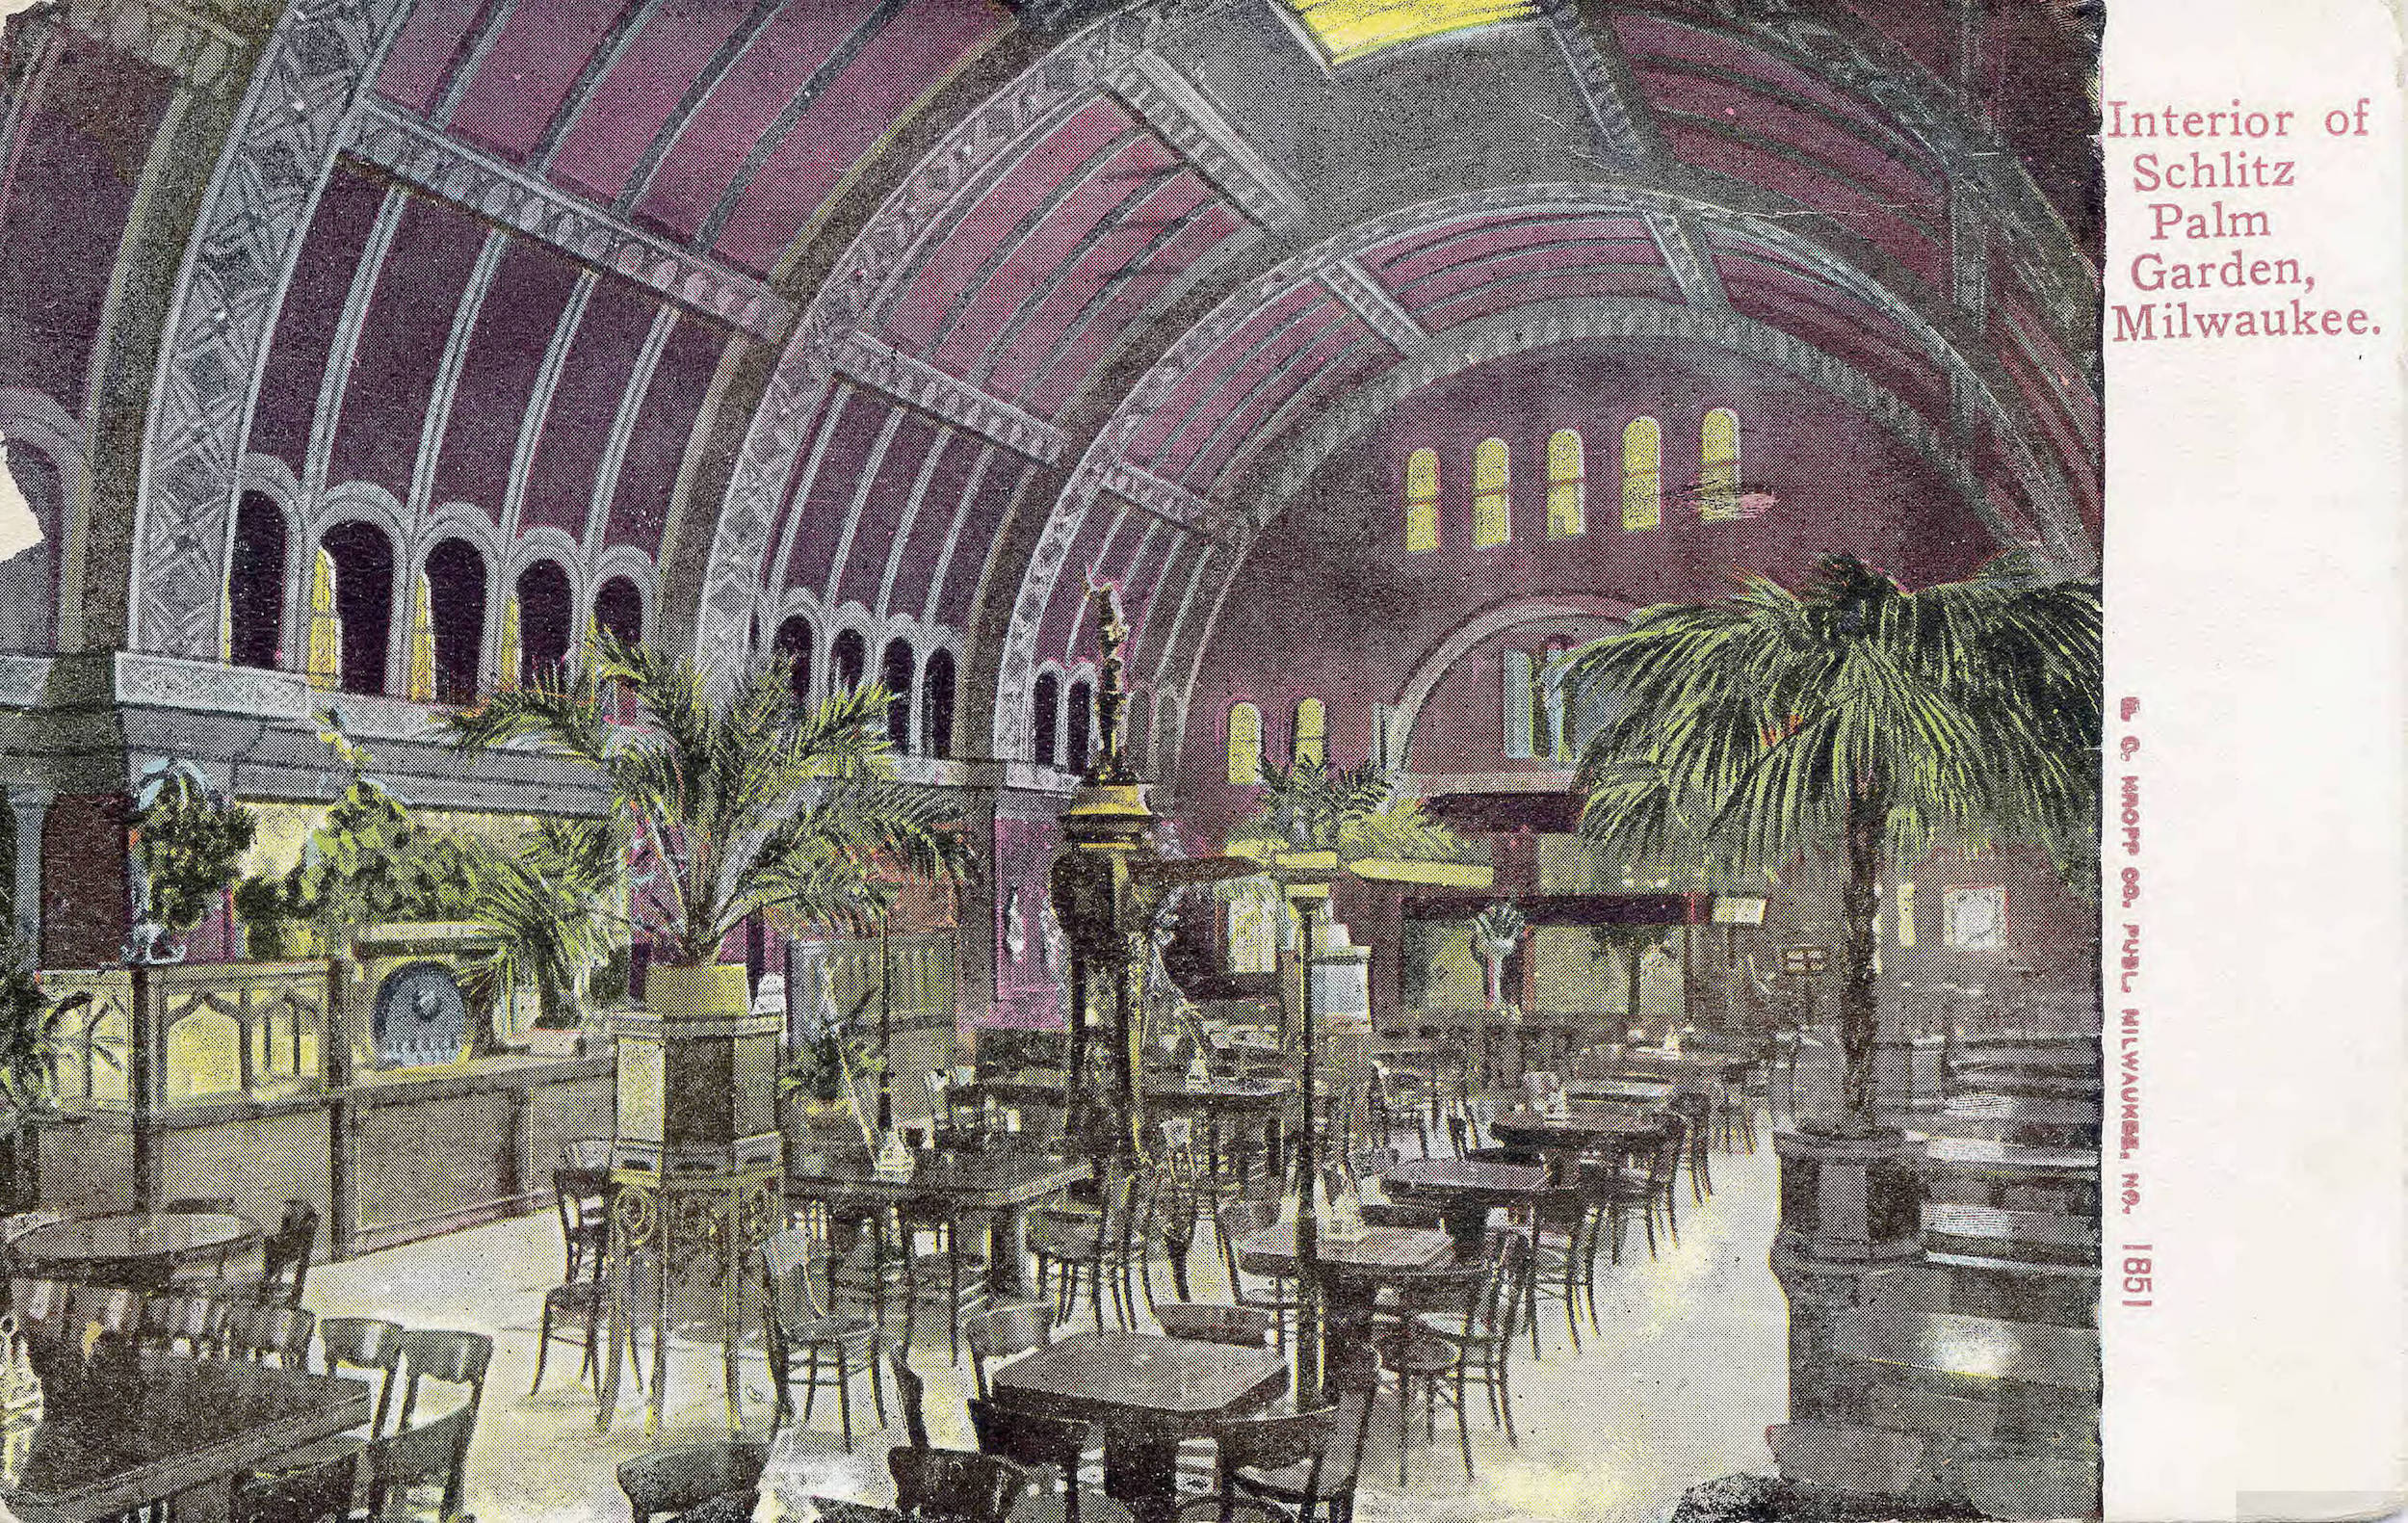 This 1911 postcard illustrates the domed interior of the Schlitz Palm Garden, which offered patrons fine food, music, and dancing.